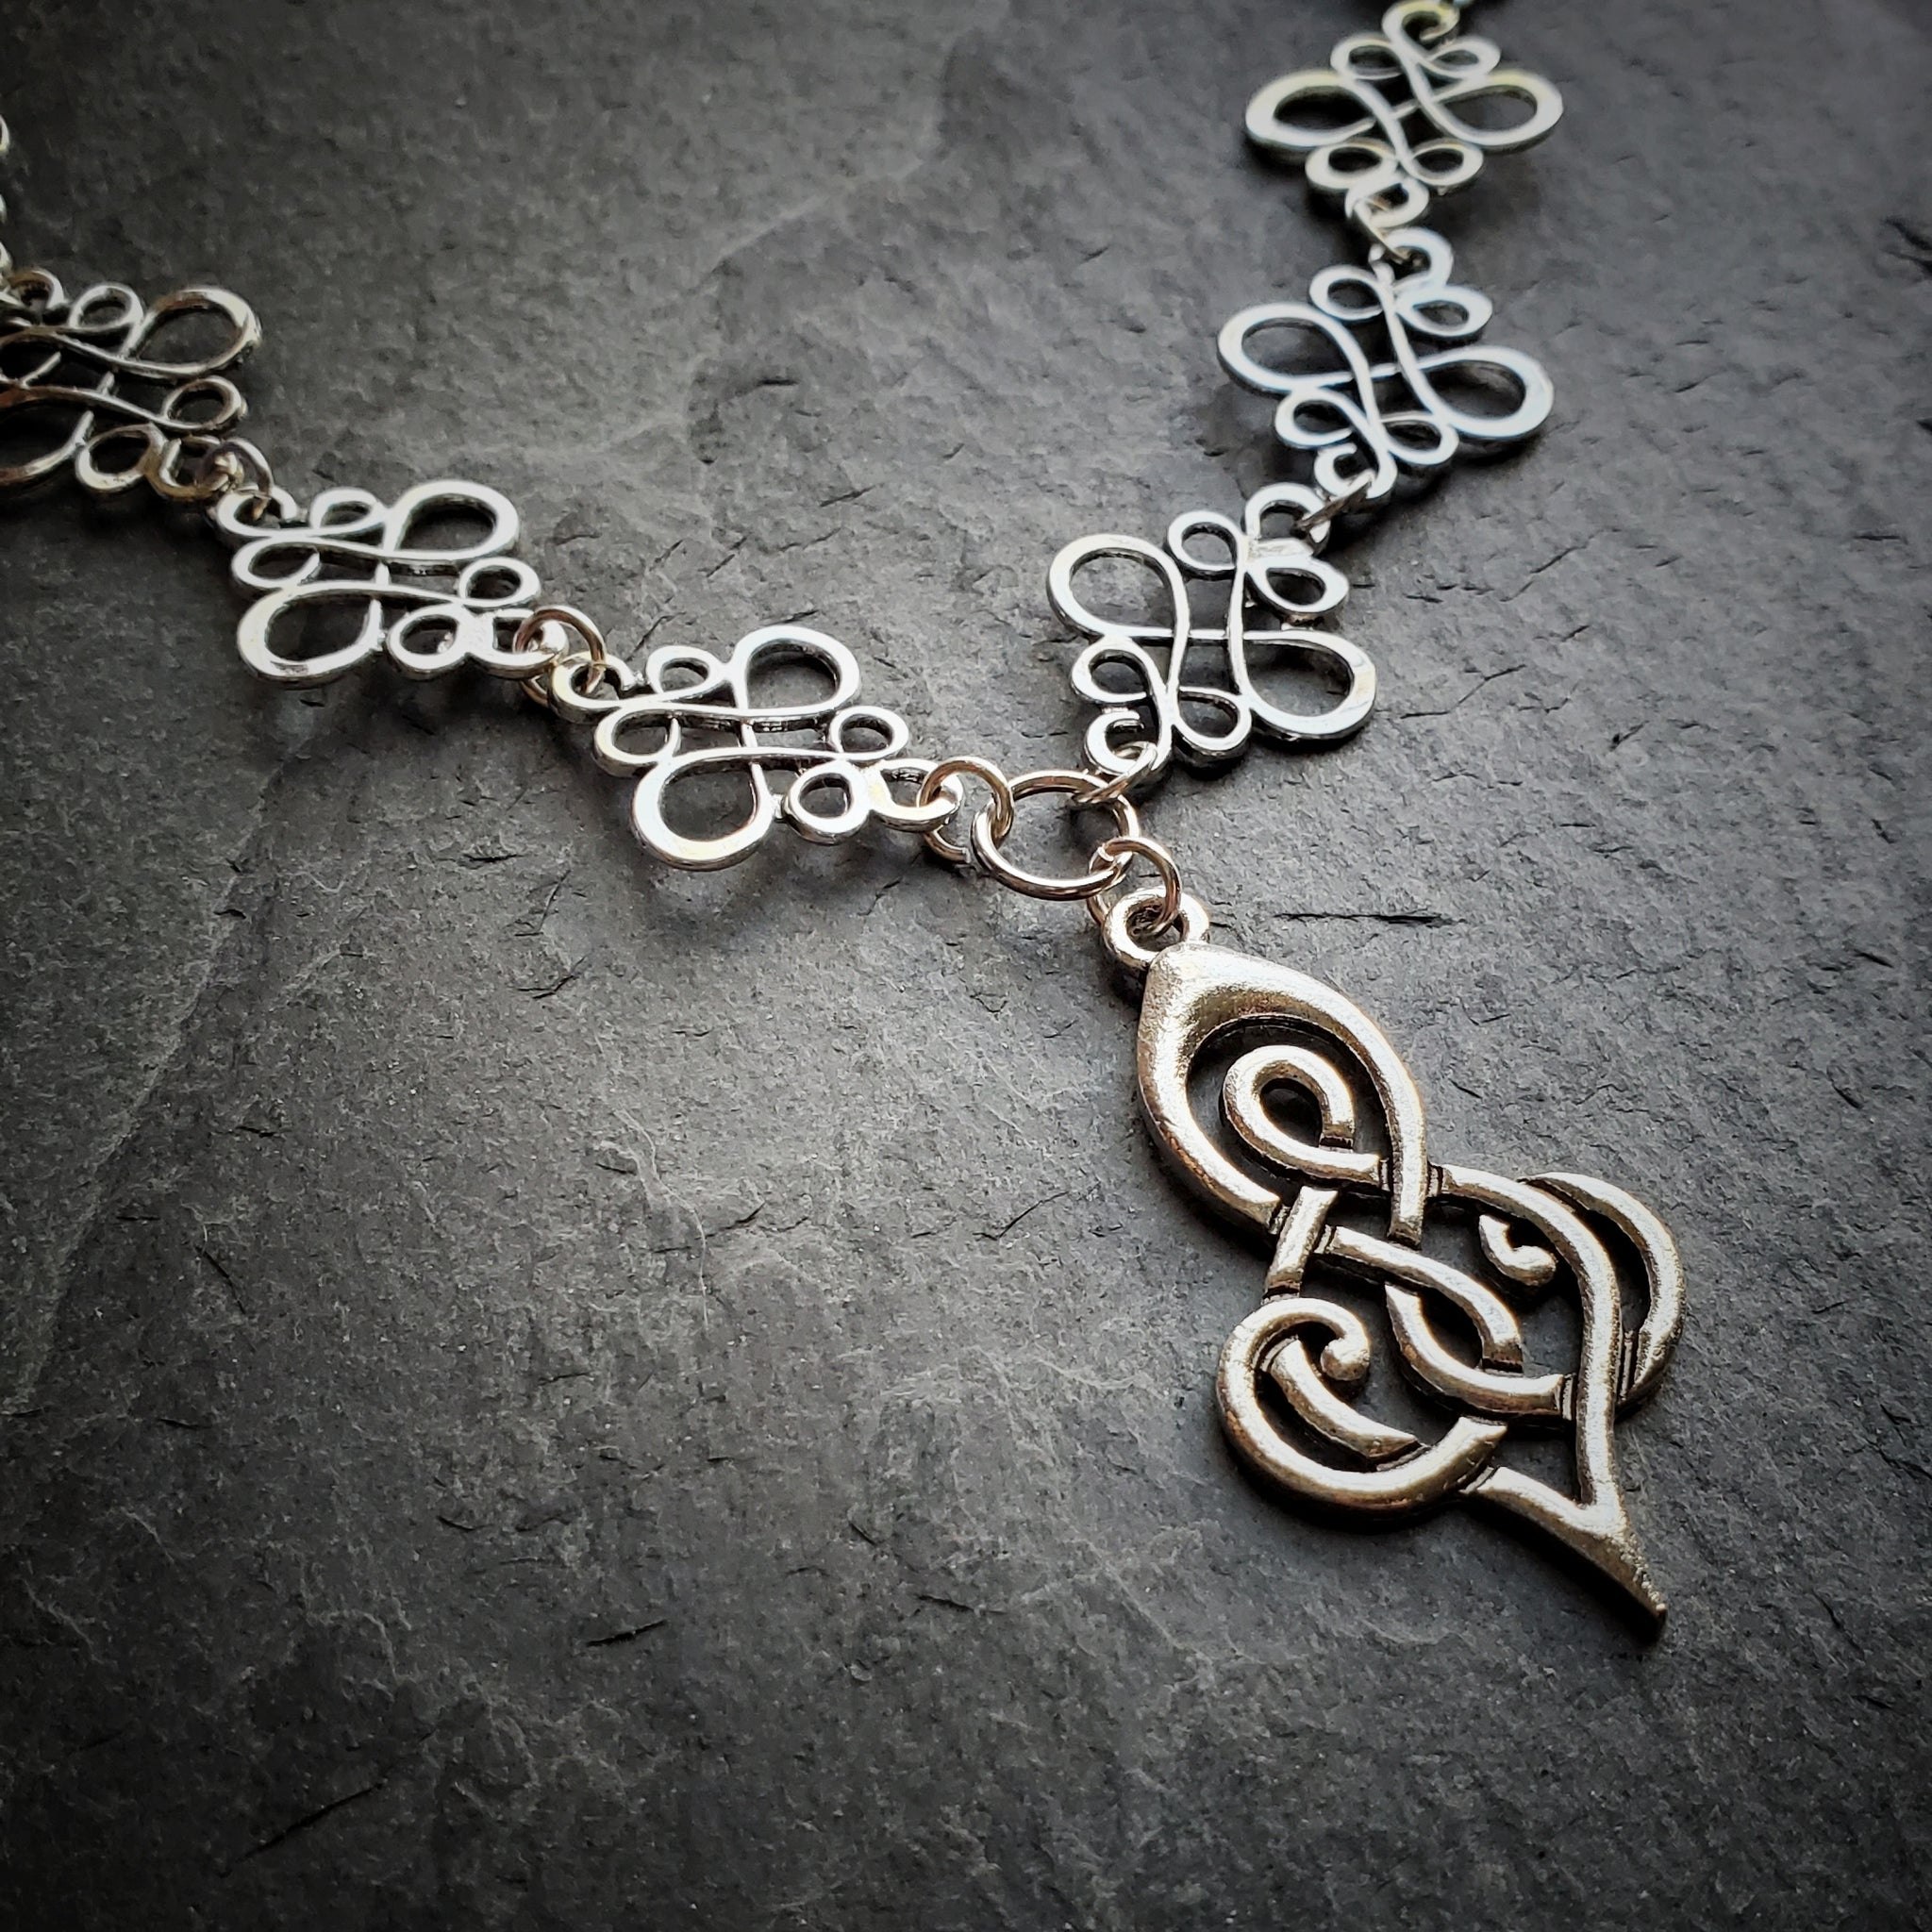 Celtic Swirl Goddess Necklace Renaissace Festival Fantasy Jewelry